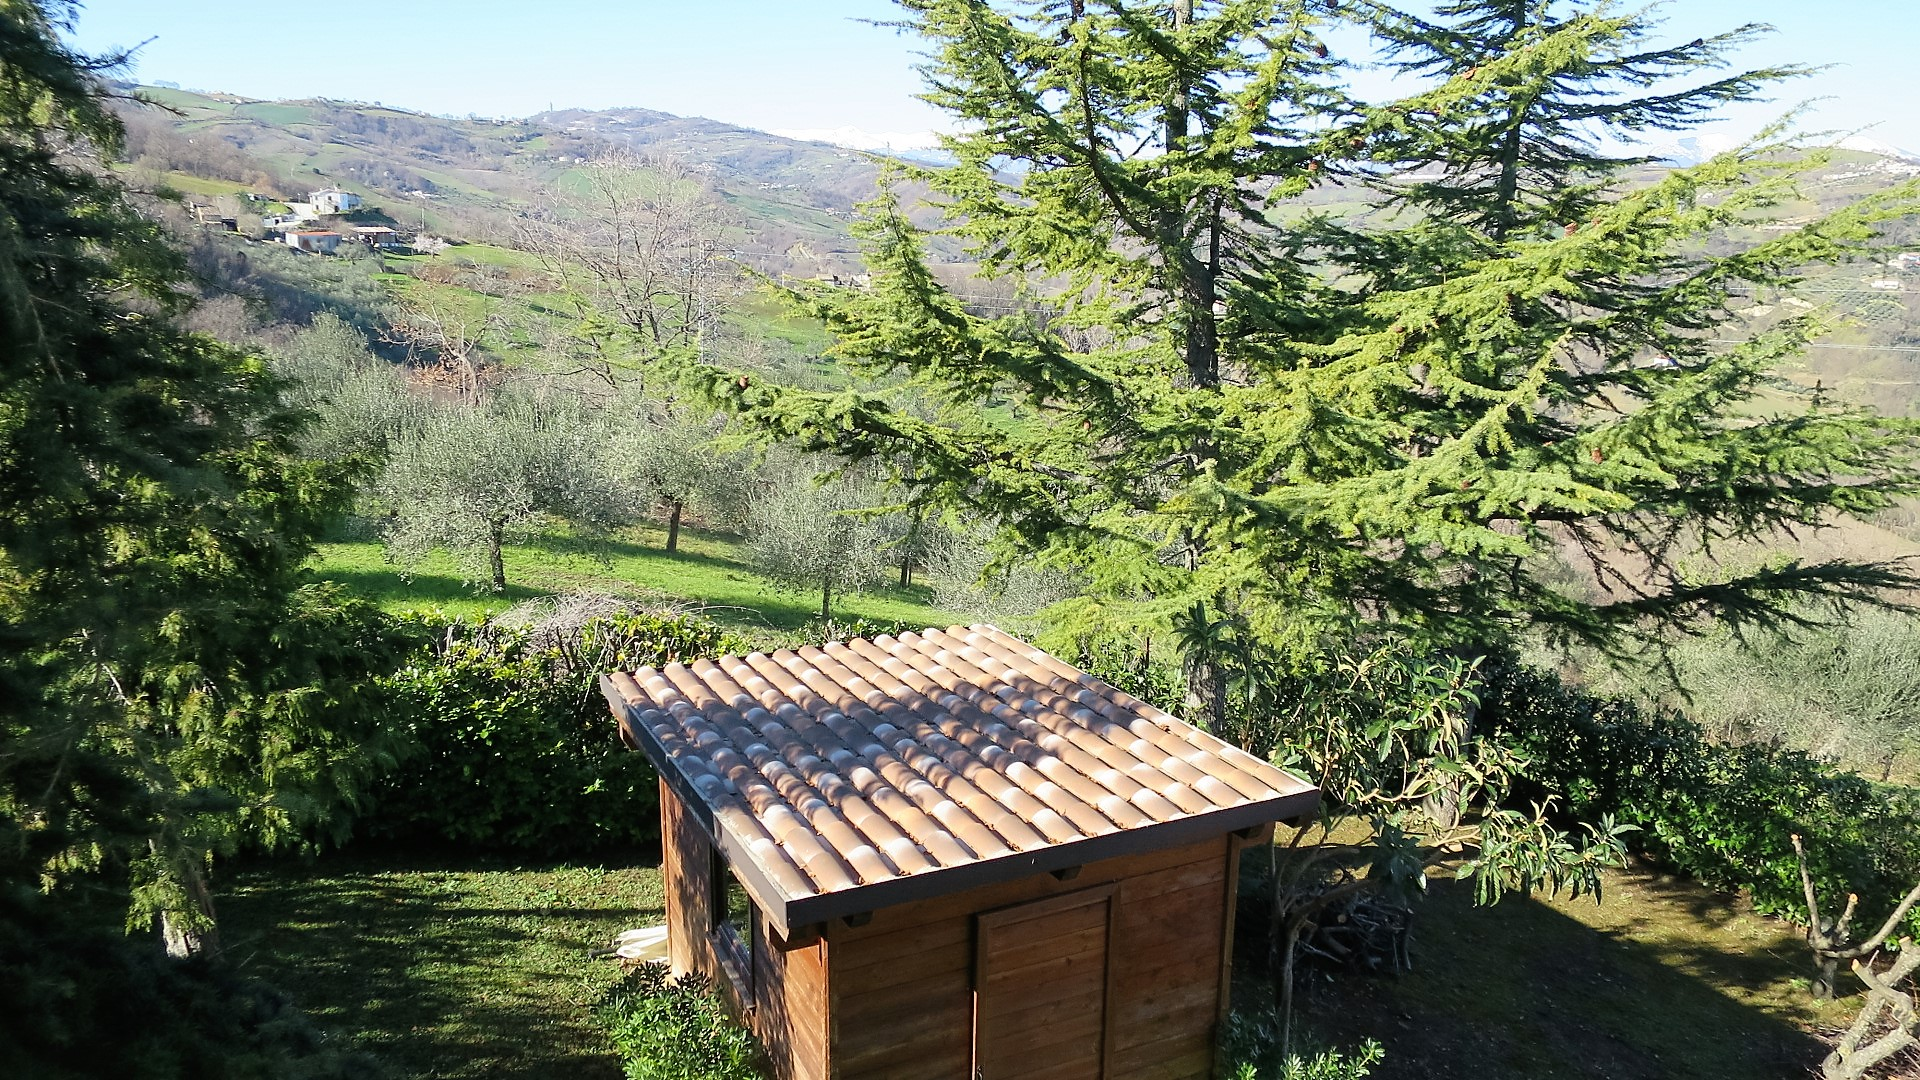 Country Houses Country Houses for sale Cellino Attanasio (TE), Casa Feudi - Cellino Attanasio - EUR 198.728 210